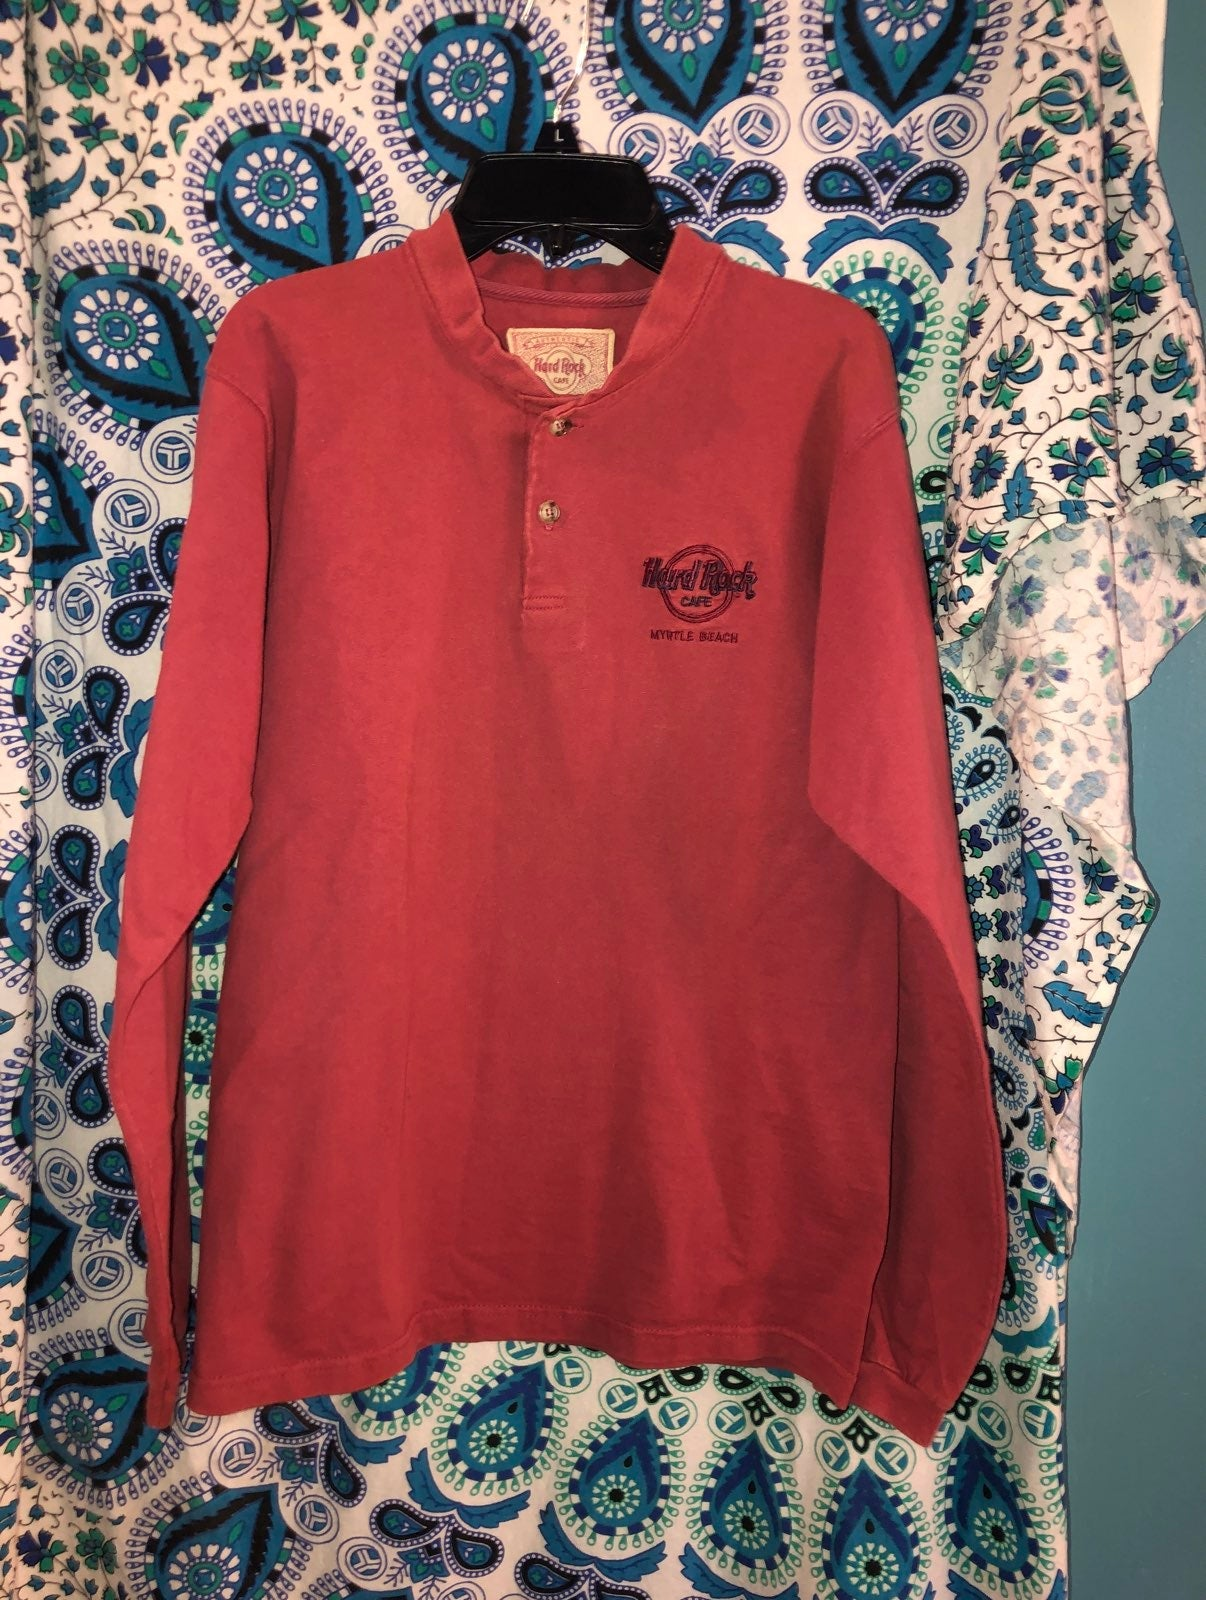 Hard Rock Cafe Small Embroidered Henley